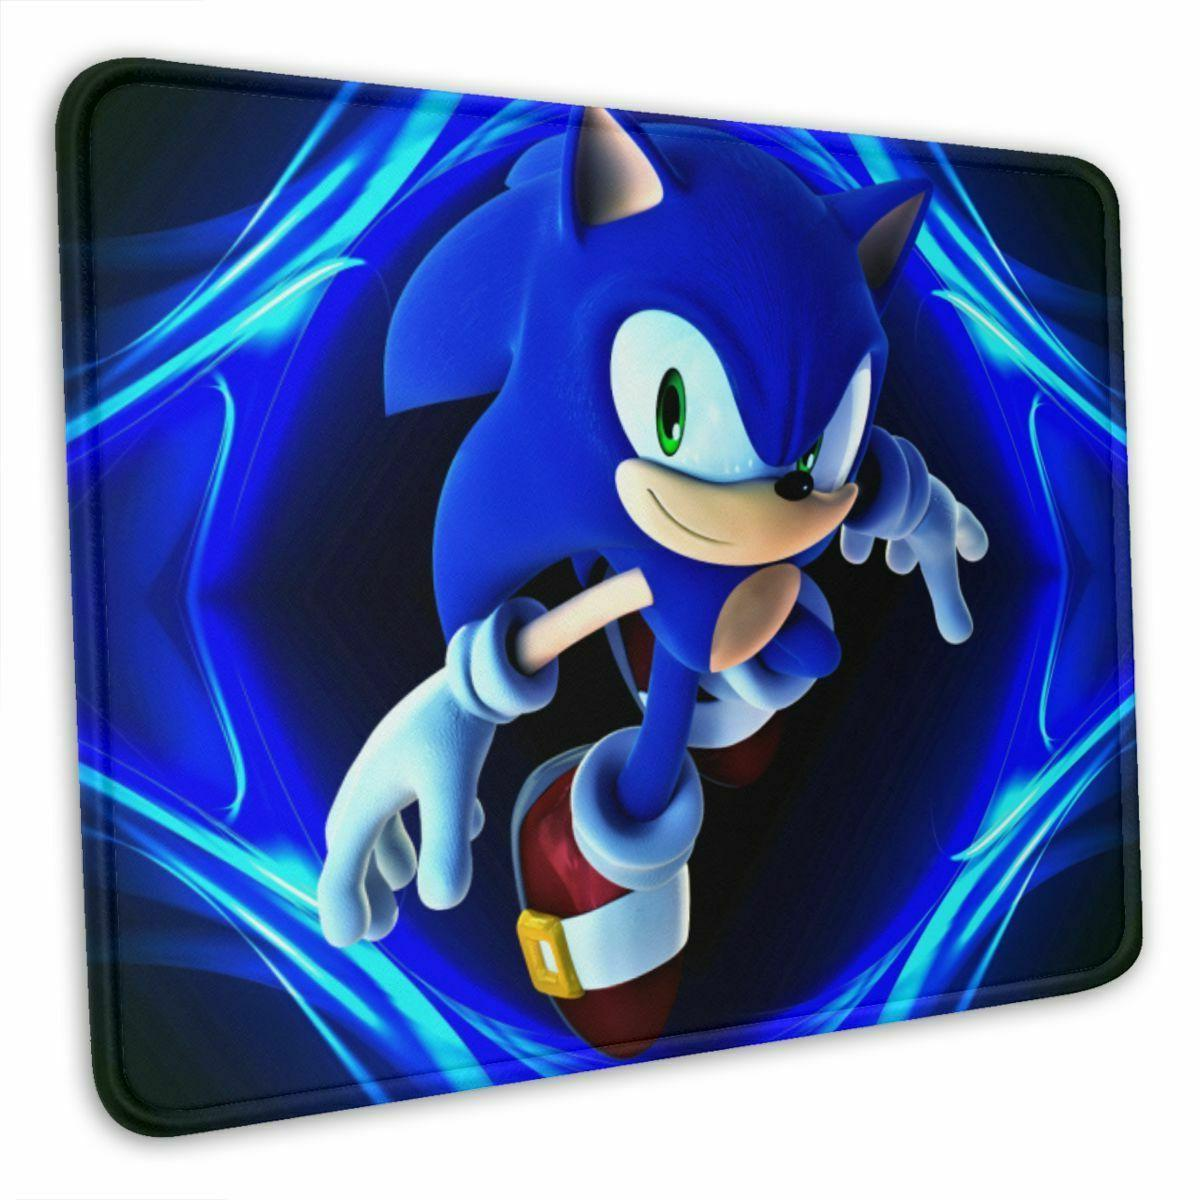 sonic the hedgehog mouse pad thick rubber